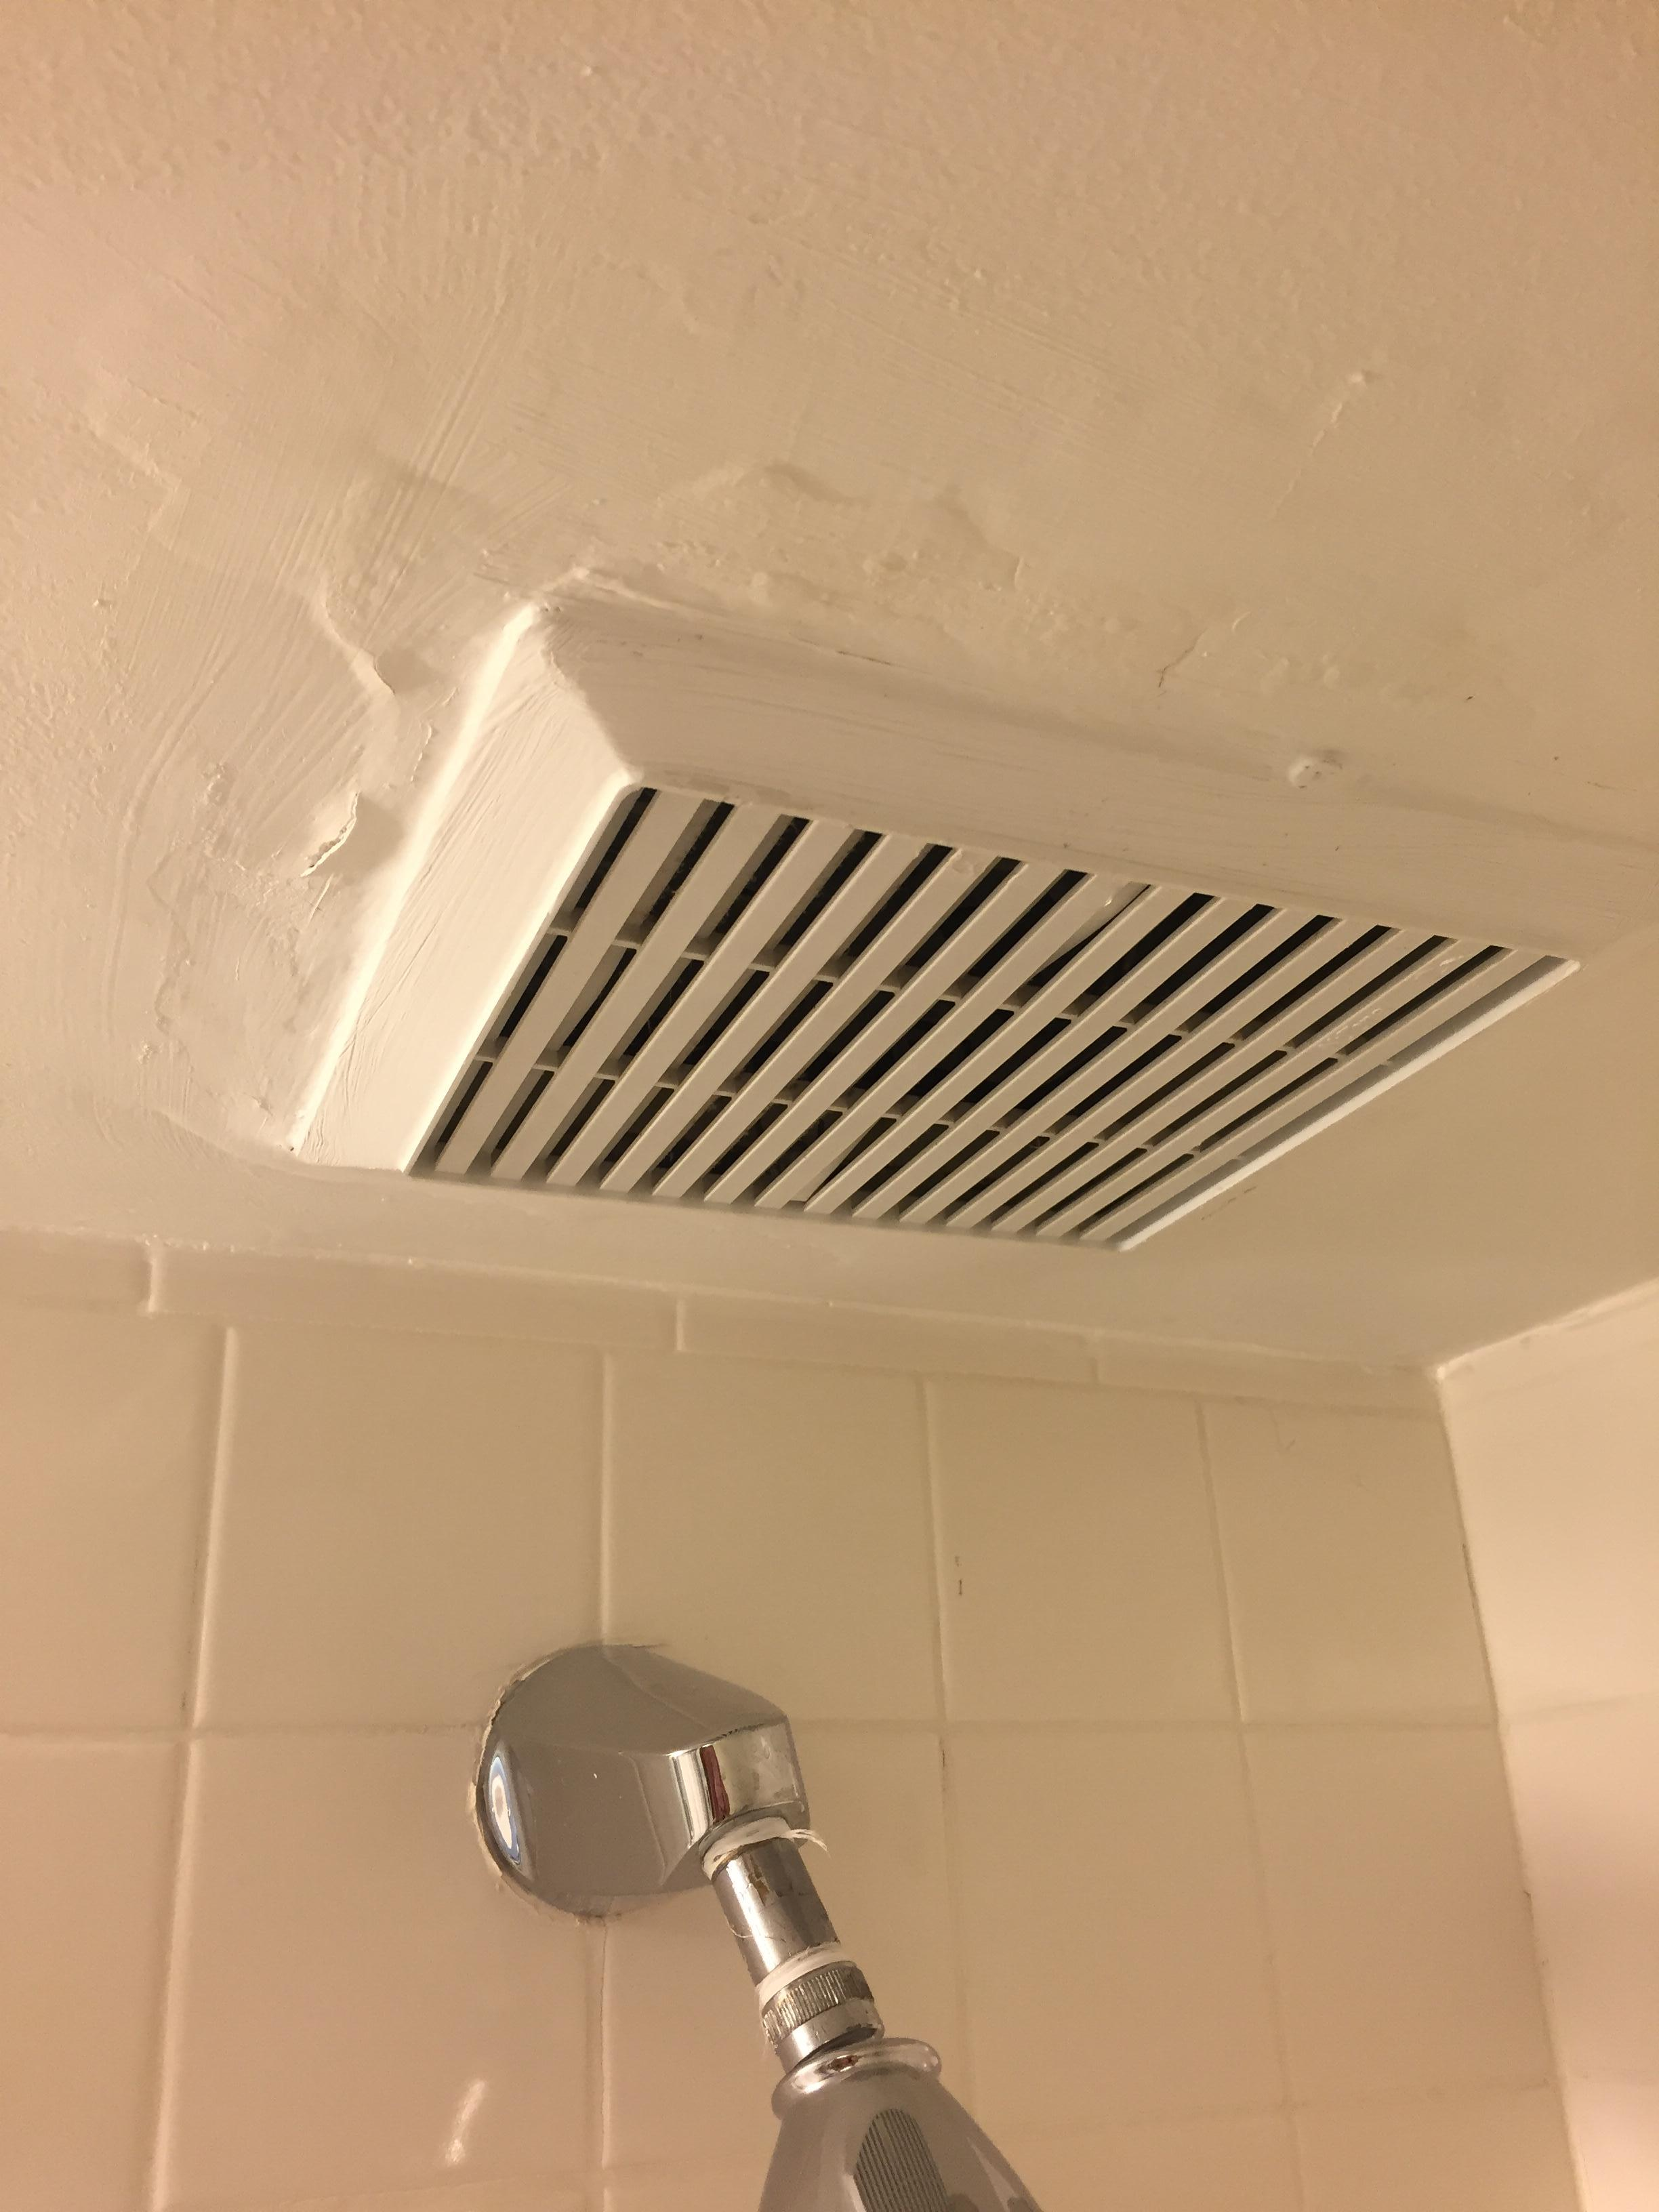 Vent in shower-barely held in ceiling